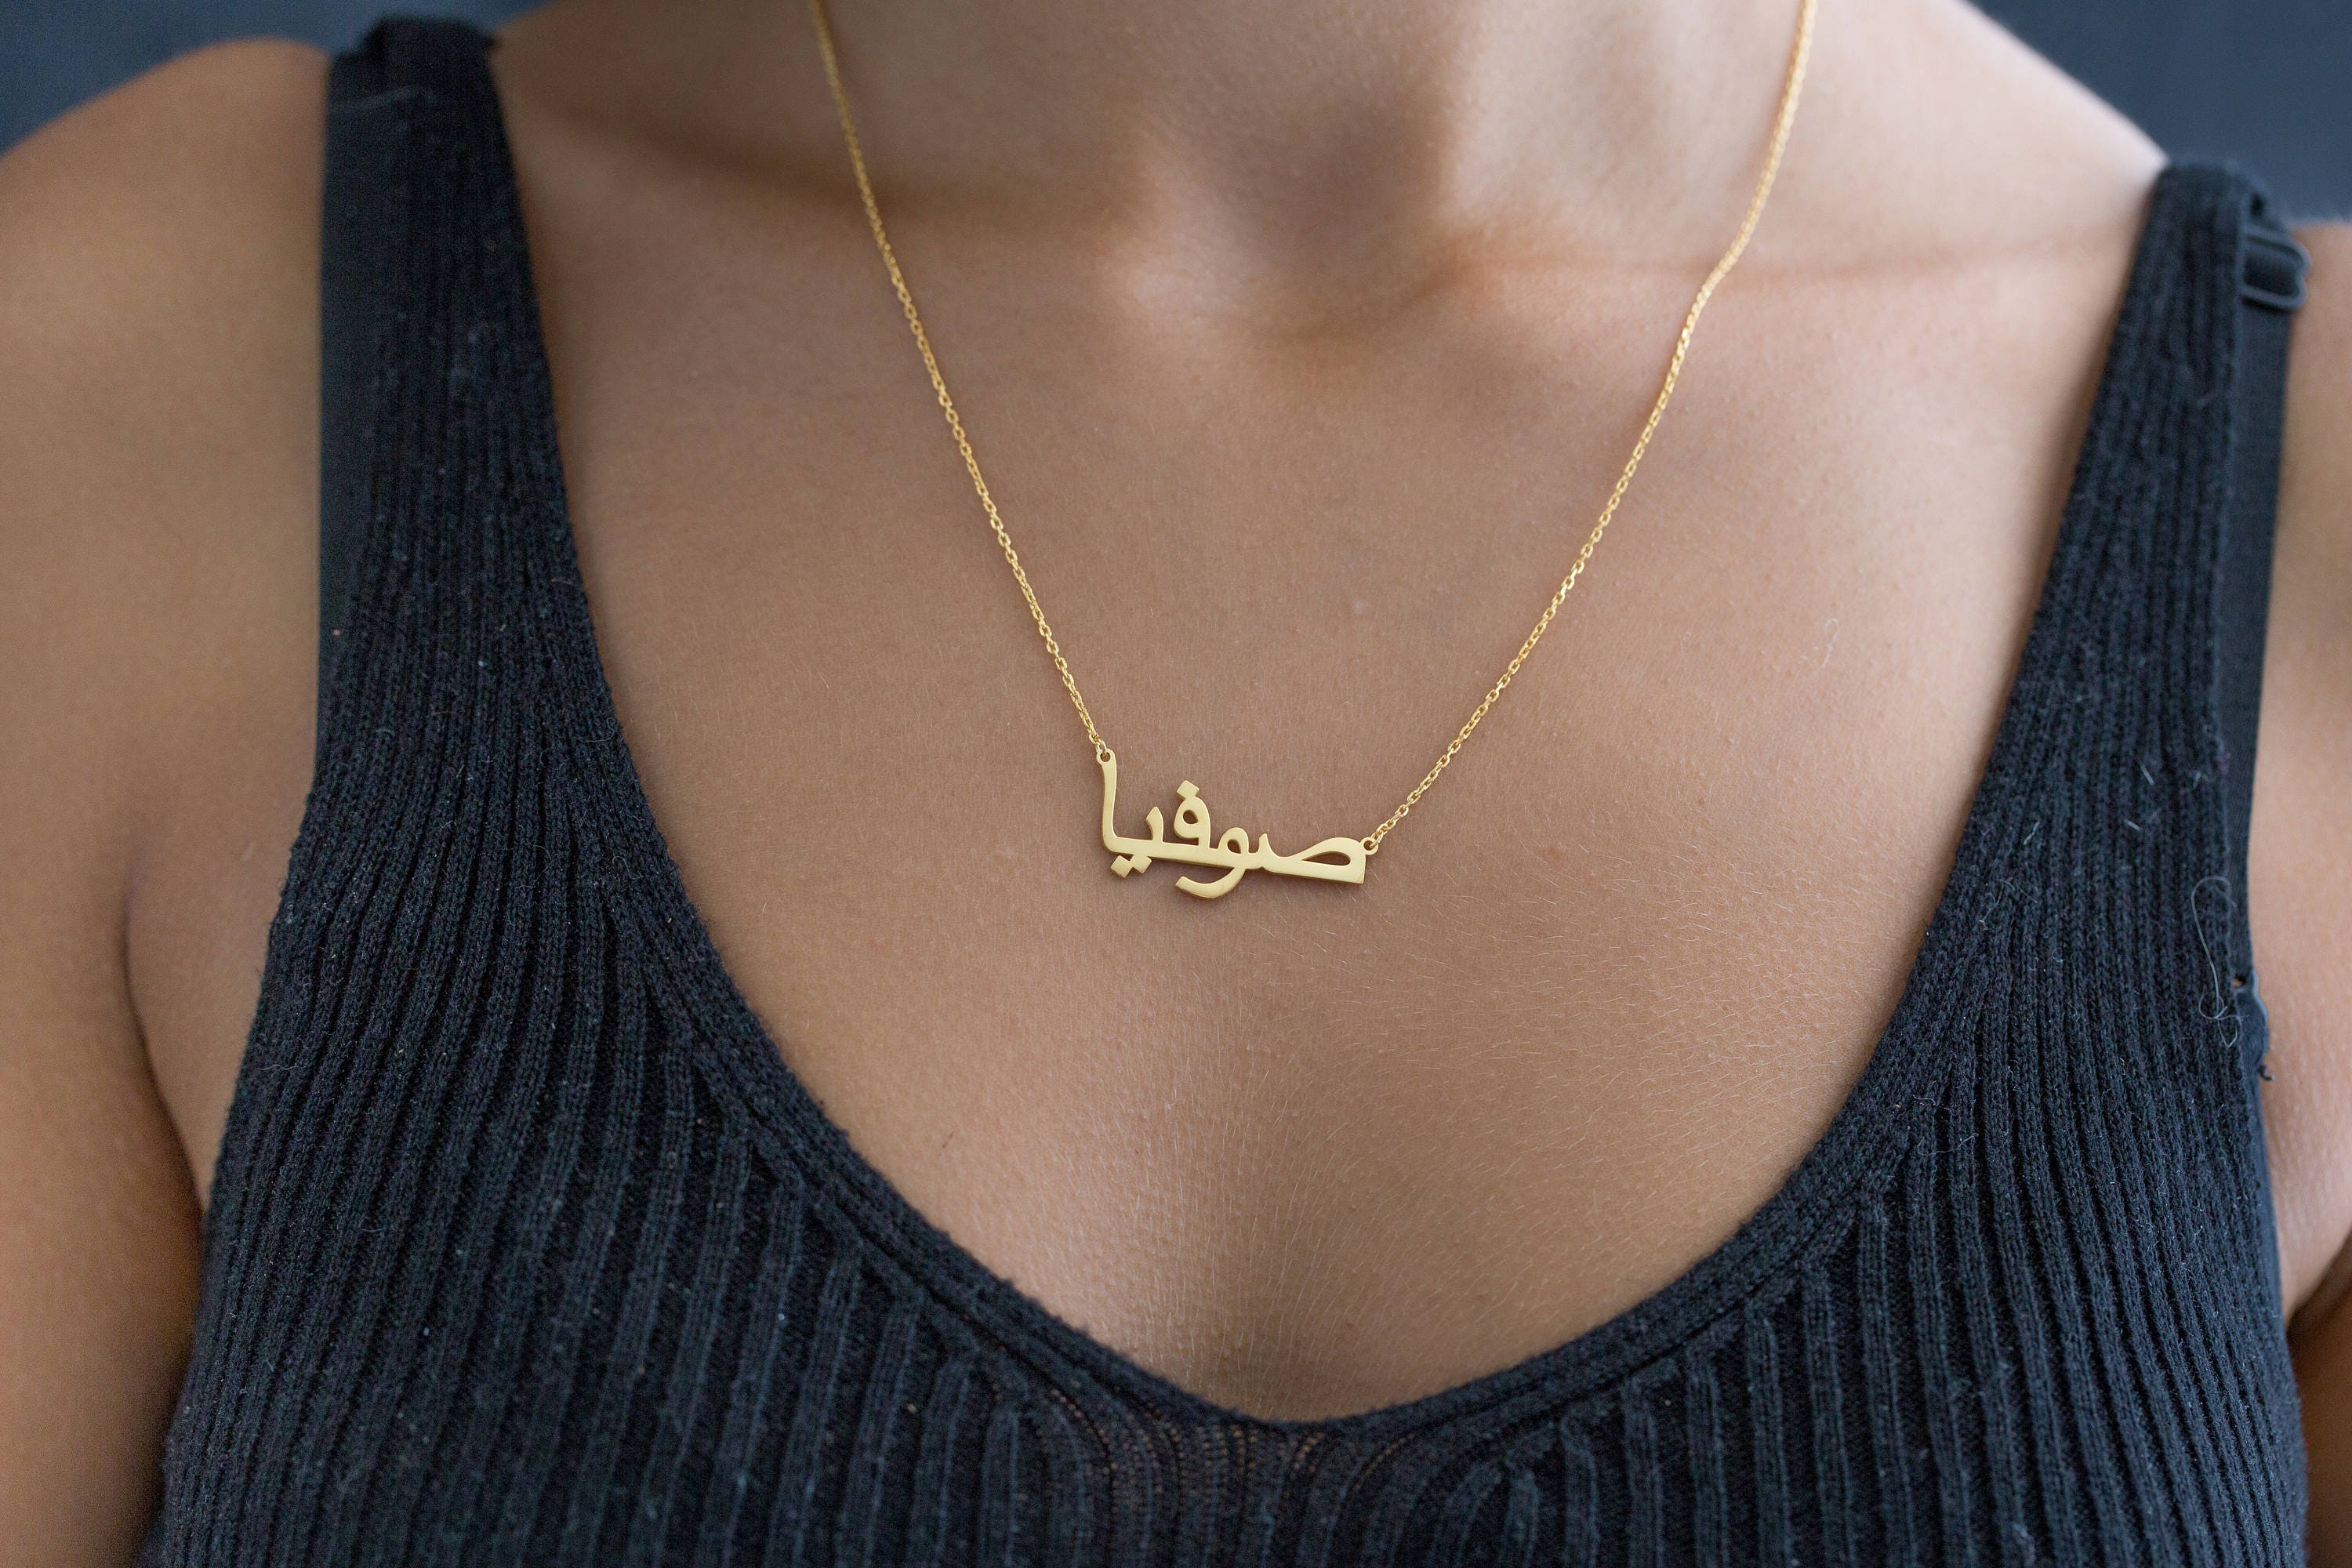 alquds pin necklace jewelry east gold arabic middle